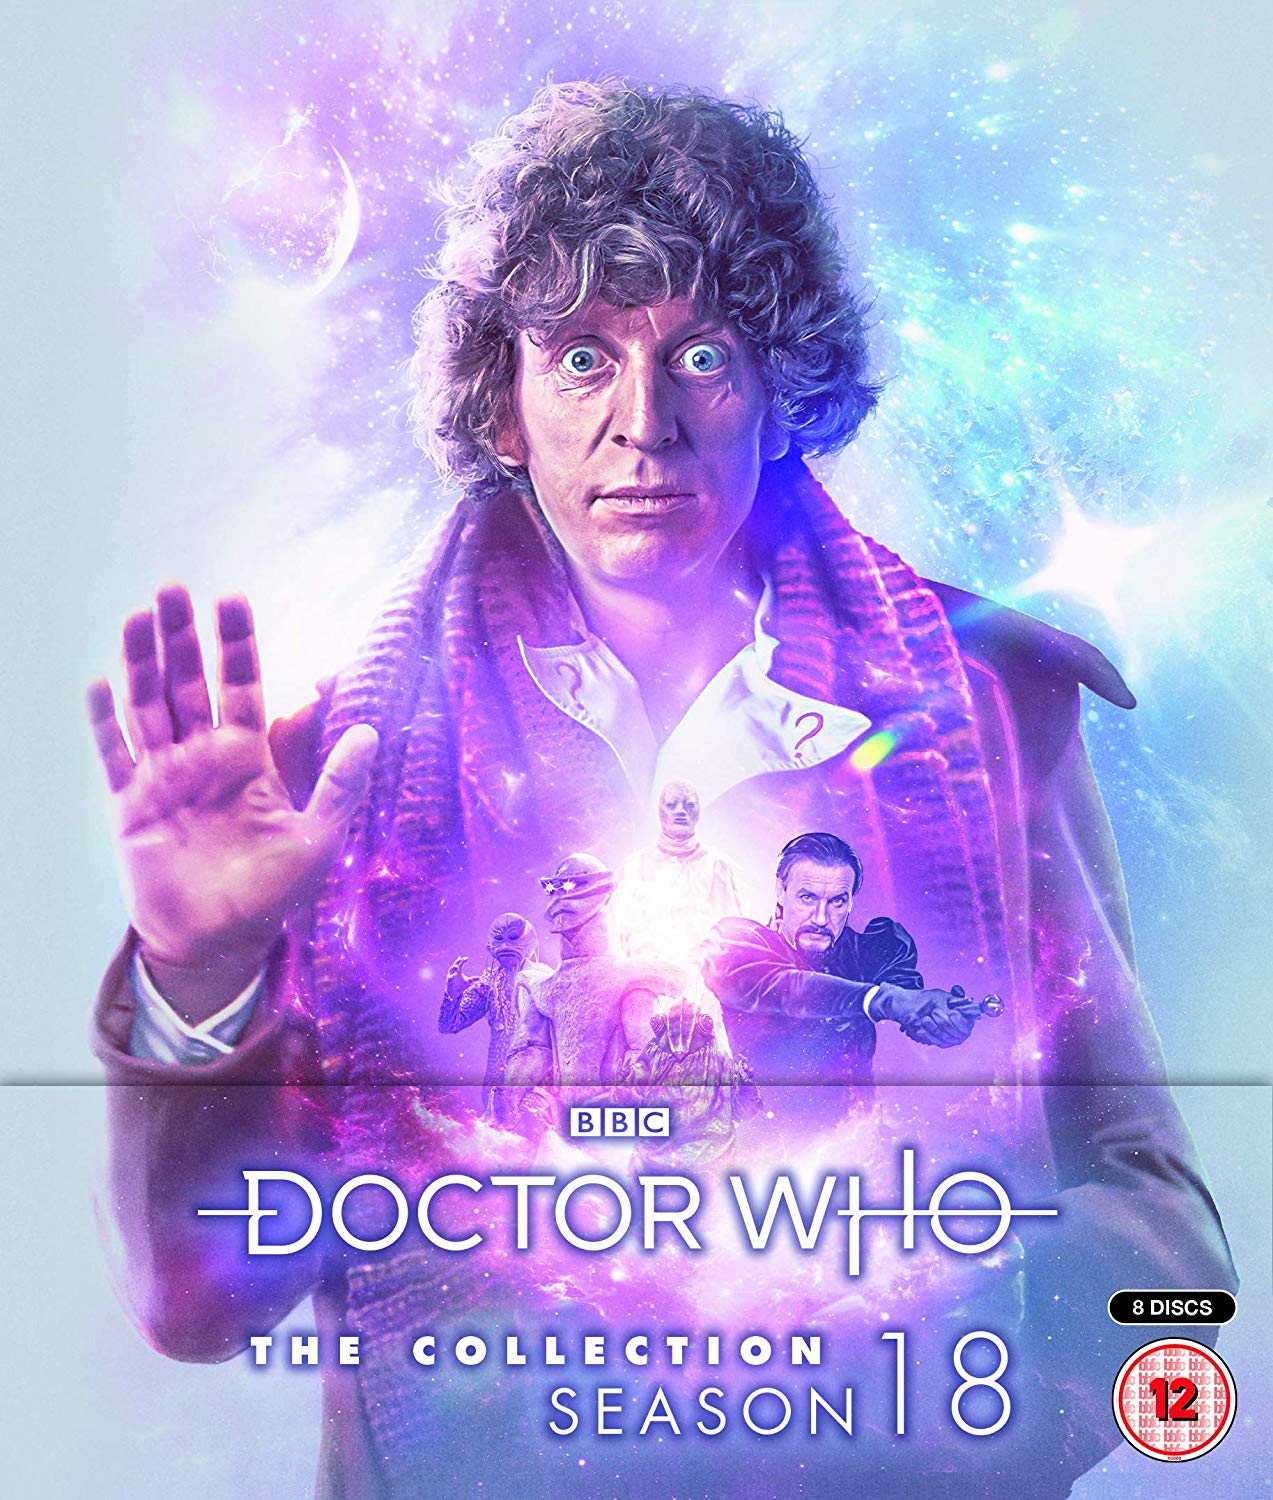 Doctor Who - The Collection: Season 18 Blu-ray